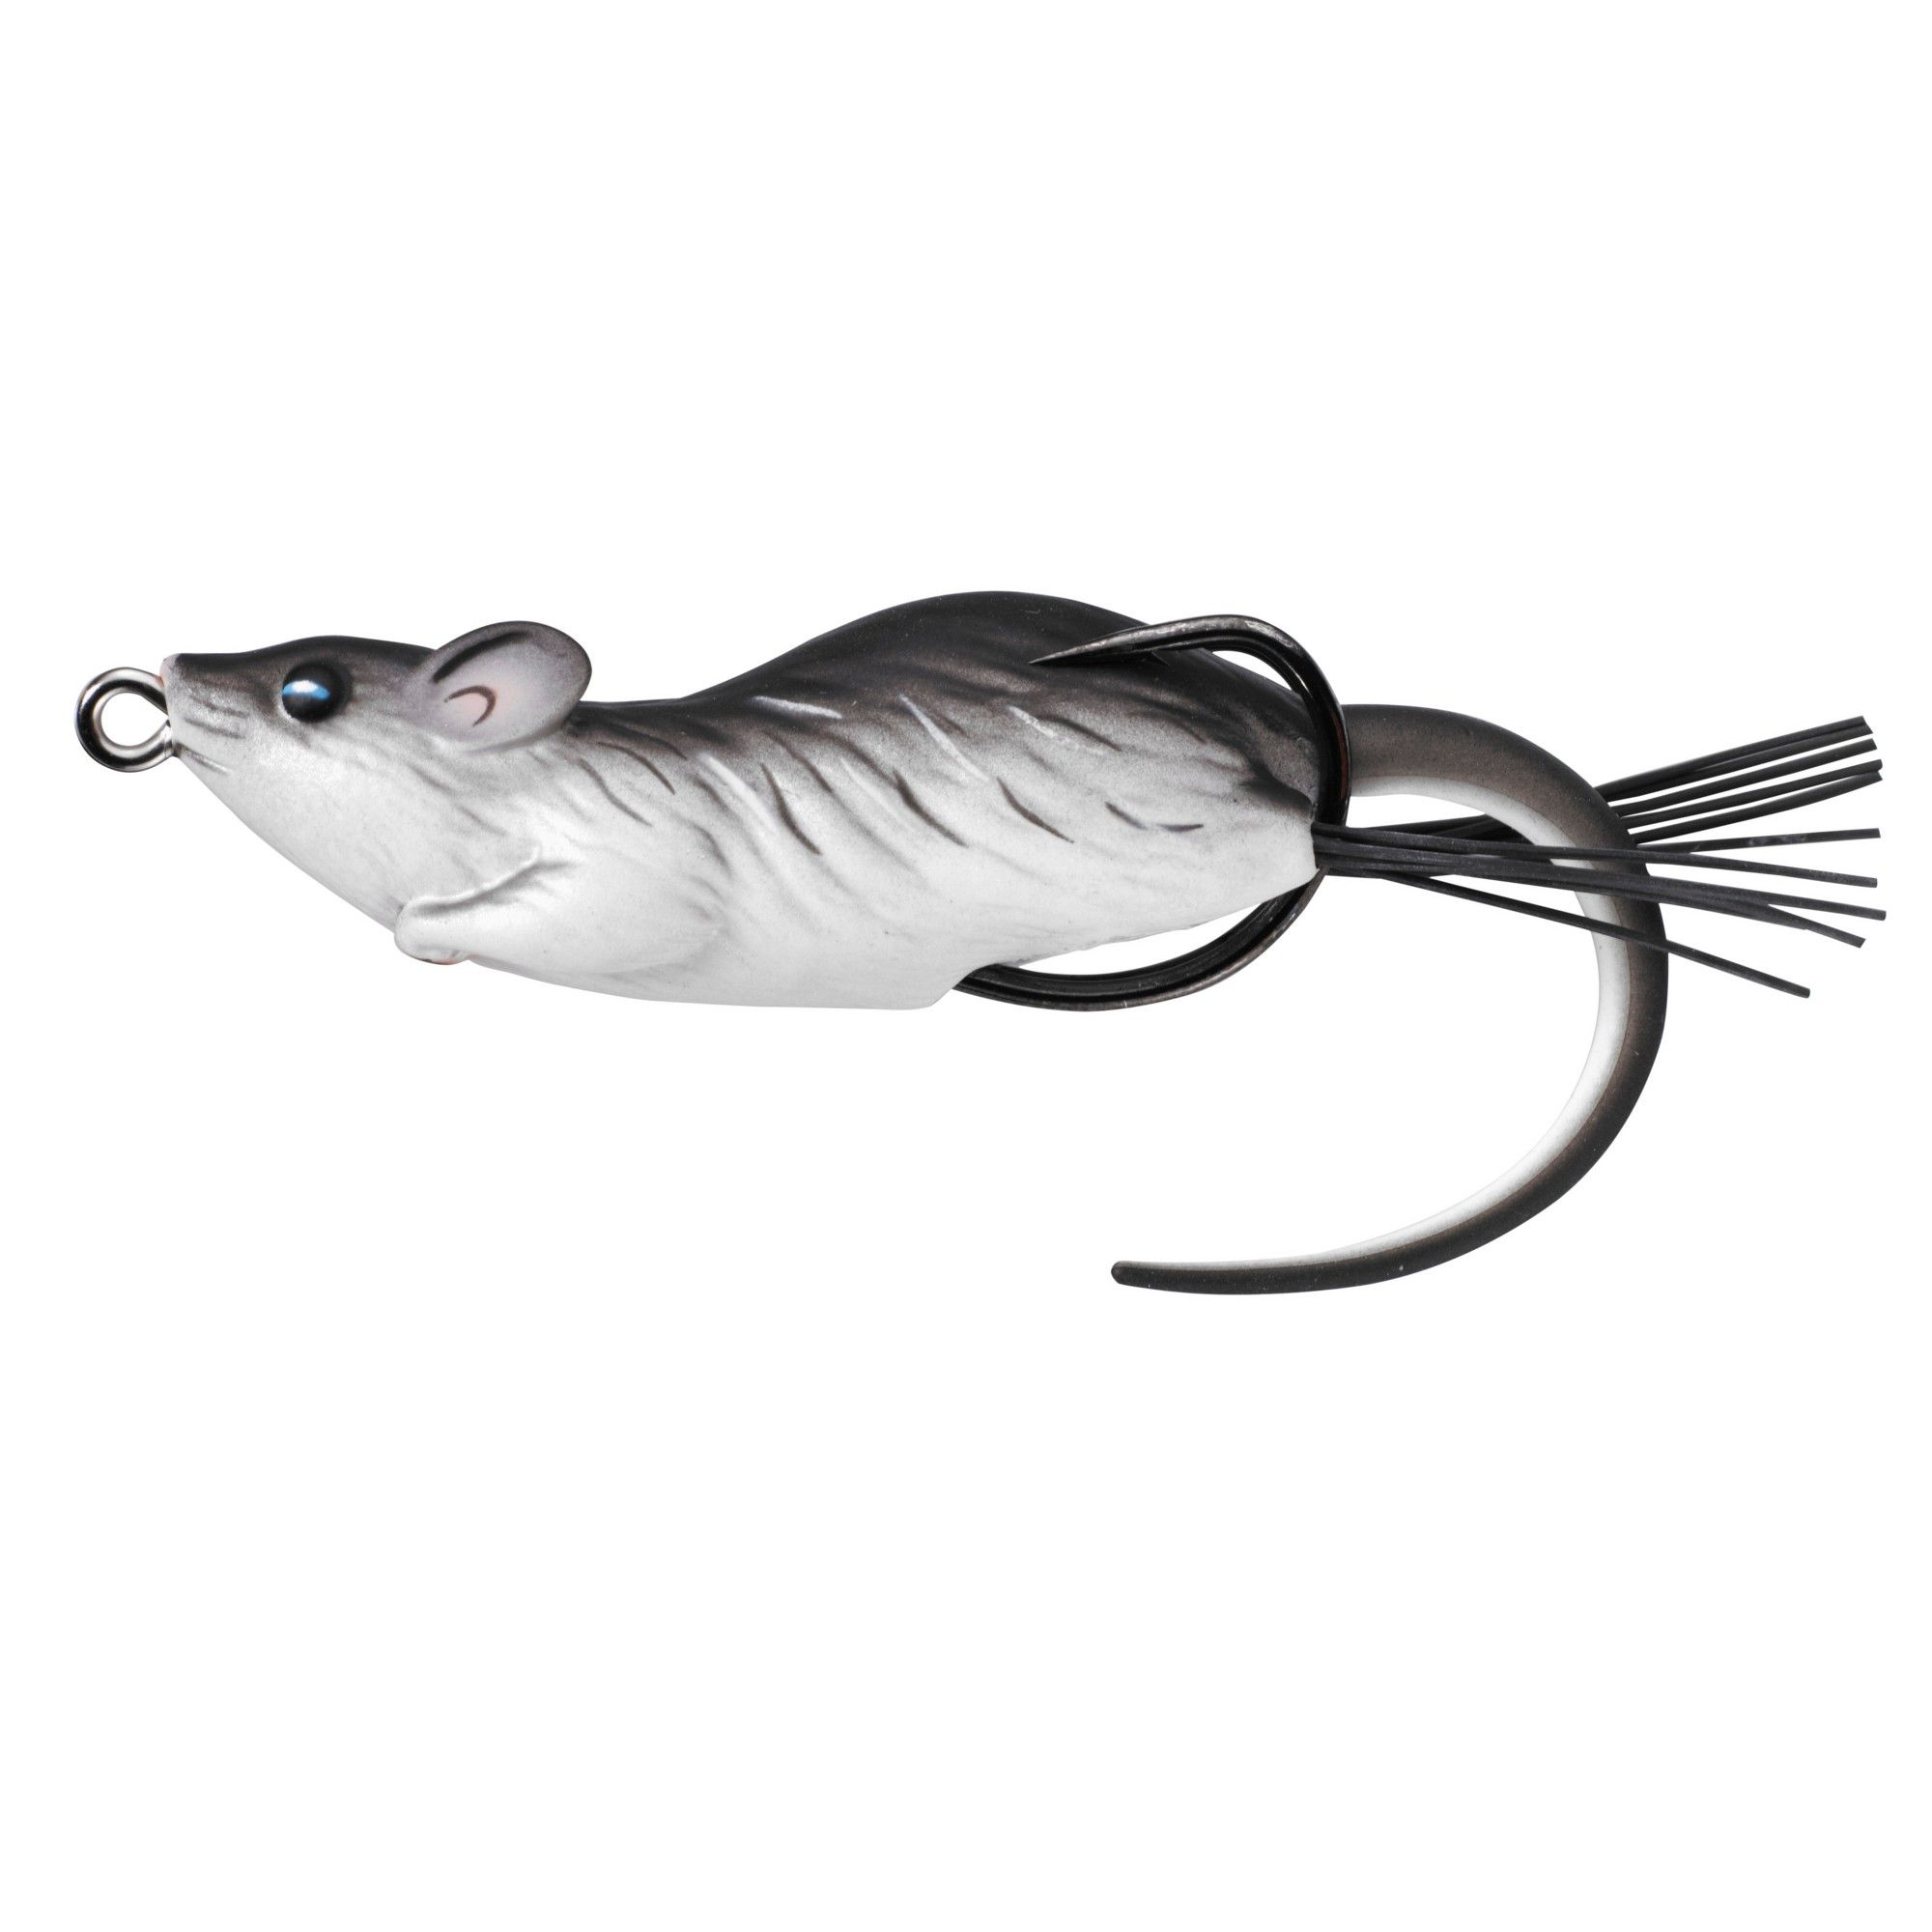 Livetarget Hollow Body Field Mouse 2 3//4/""